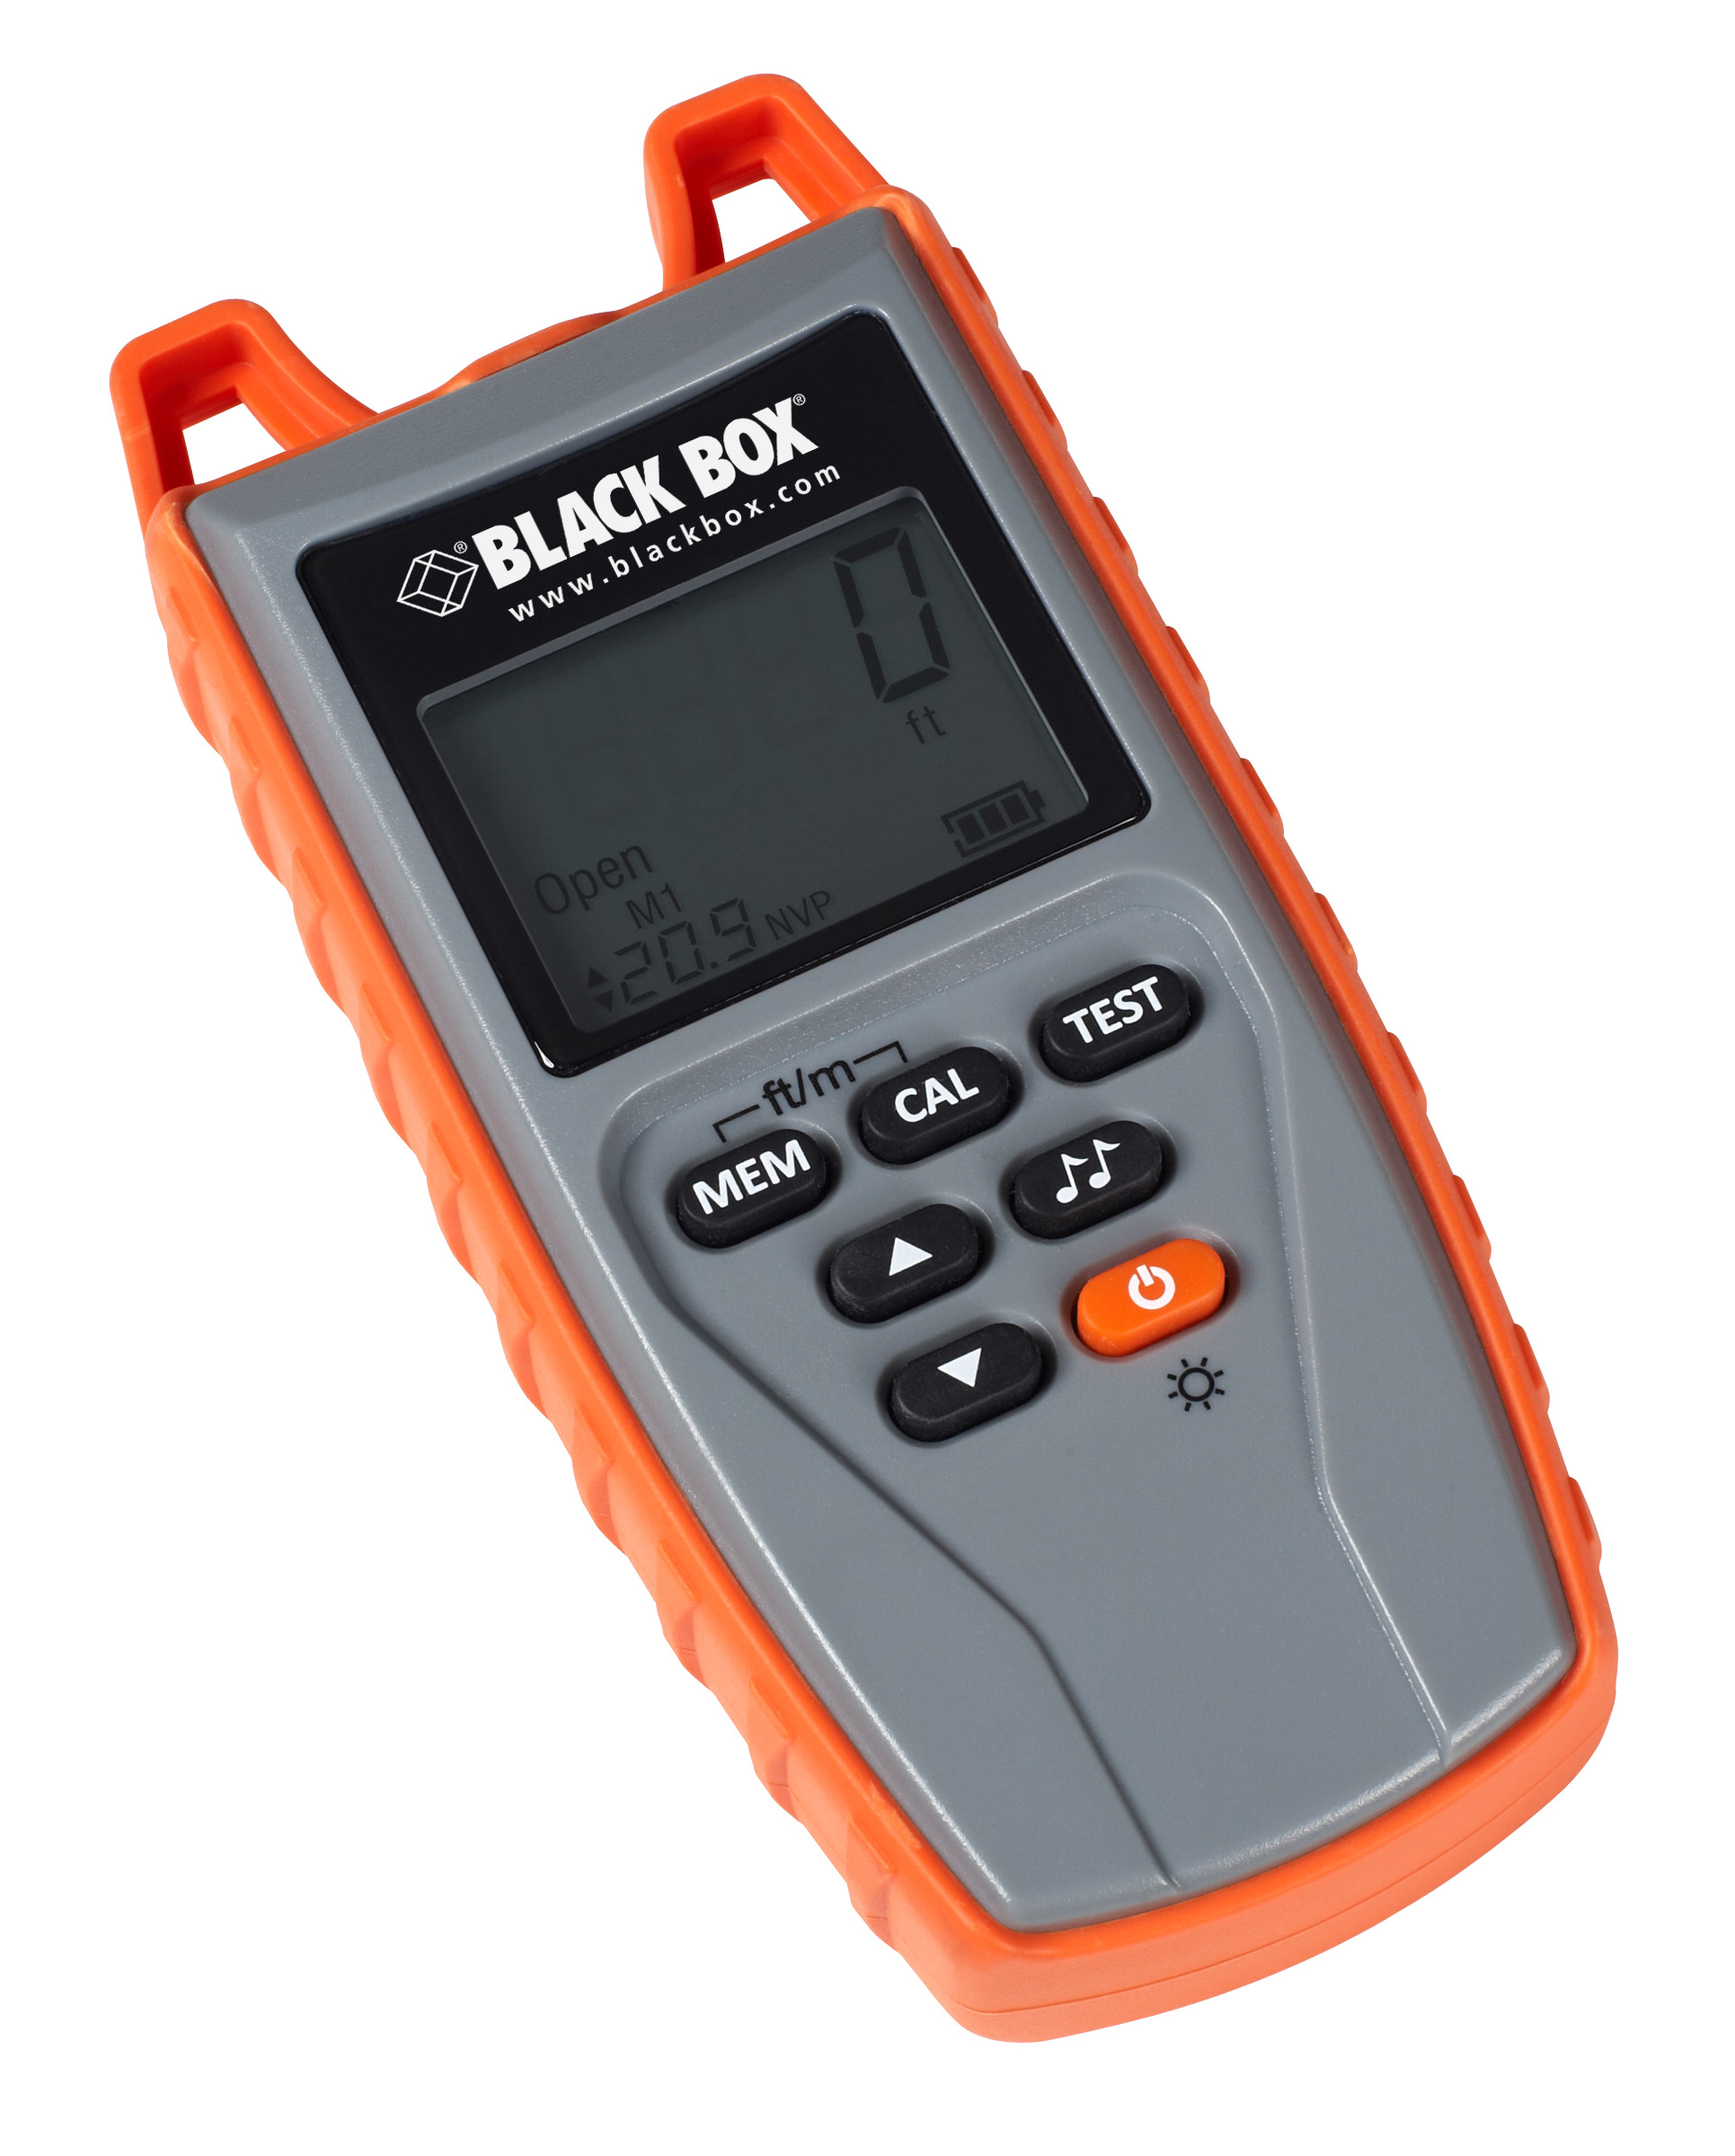 Cable Length And Fault Finder Tester Black Box Am I Doing Wrong With This Cat 6 Patch Panel Wiring Server Additional Product Image